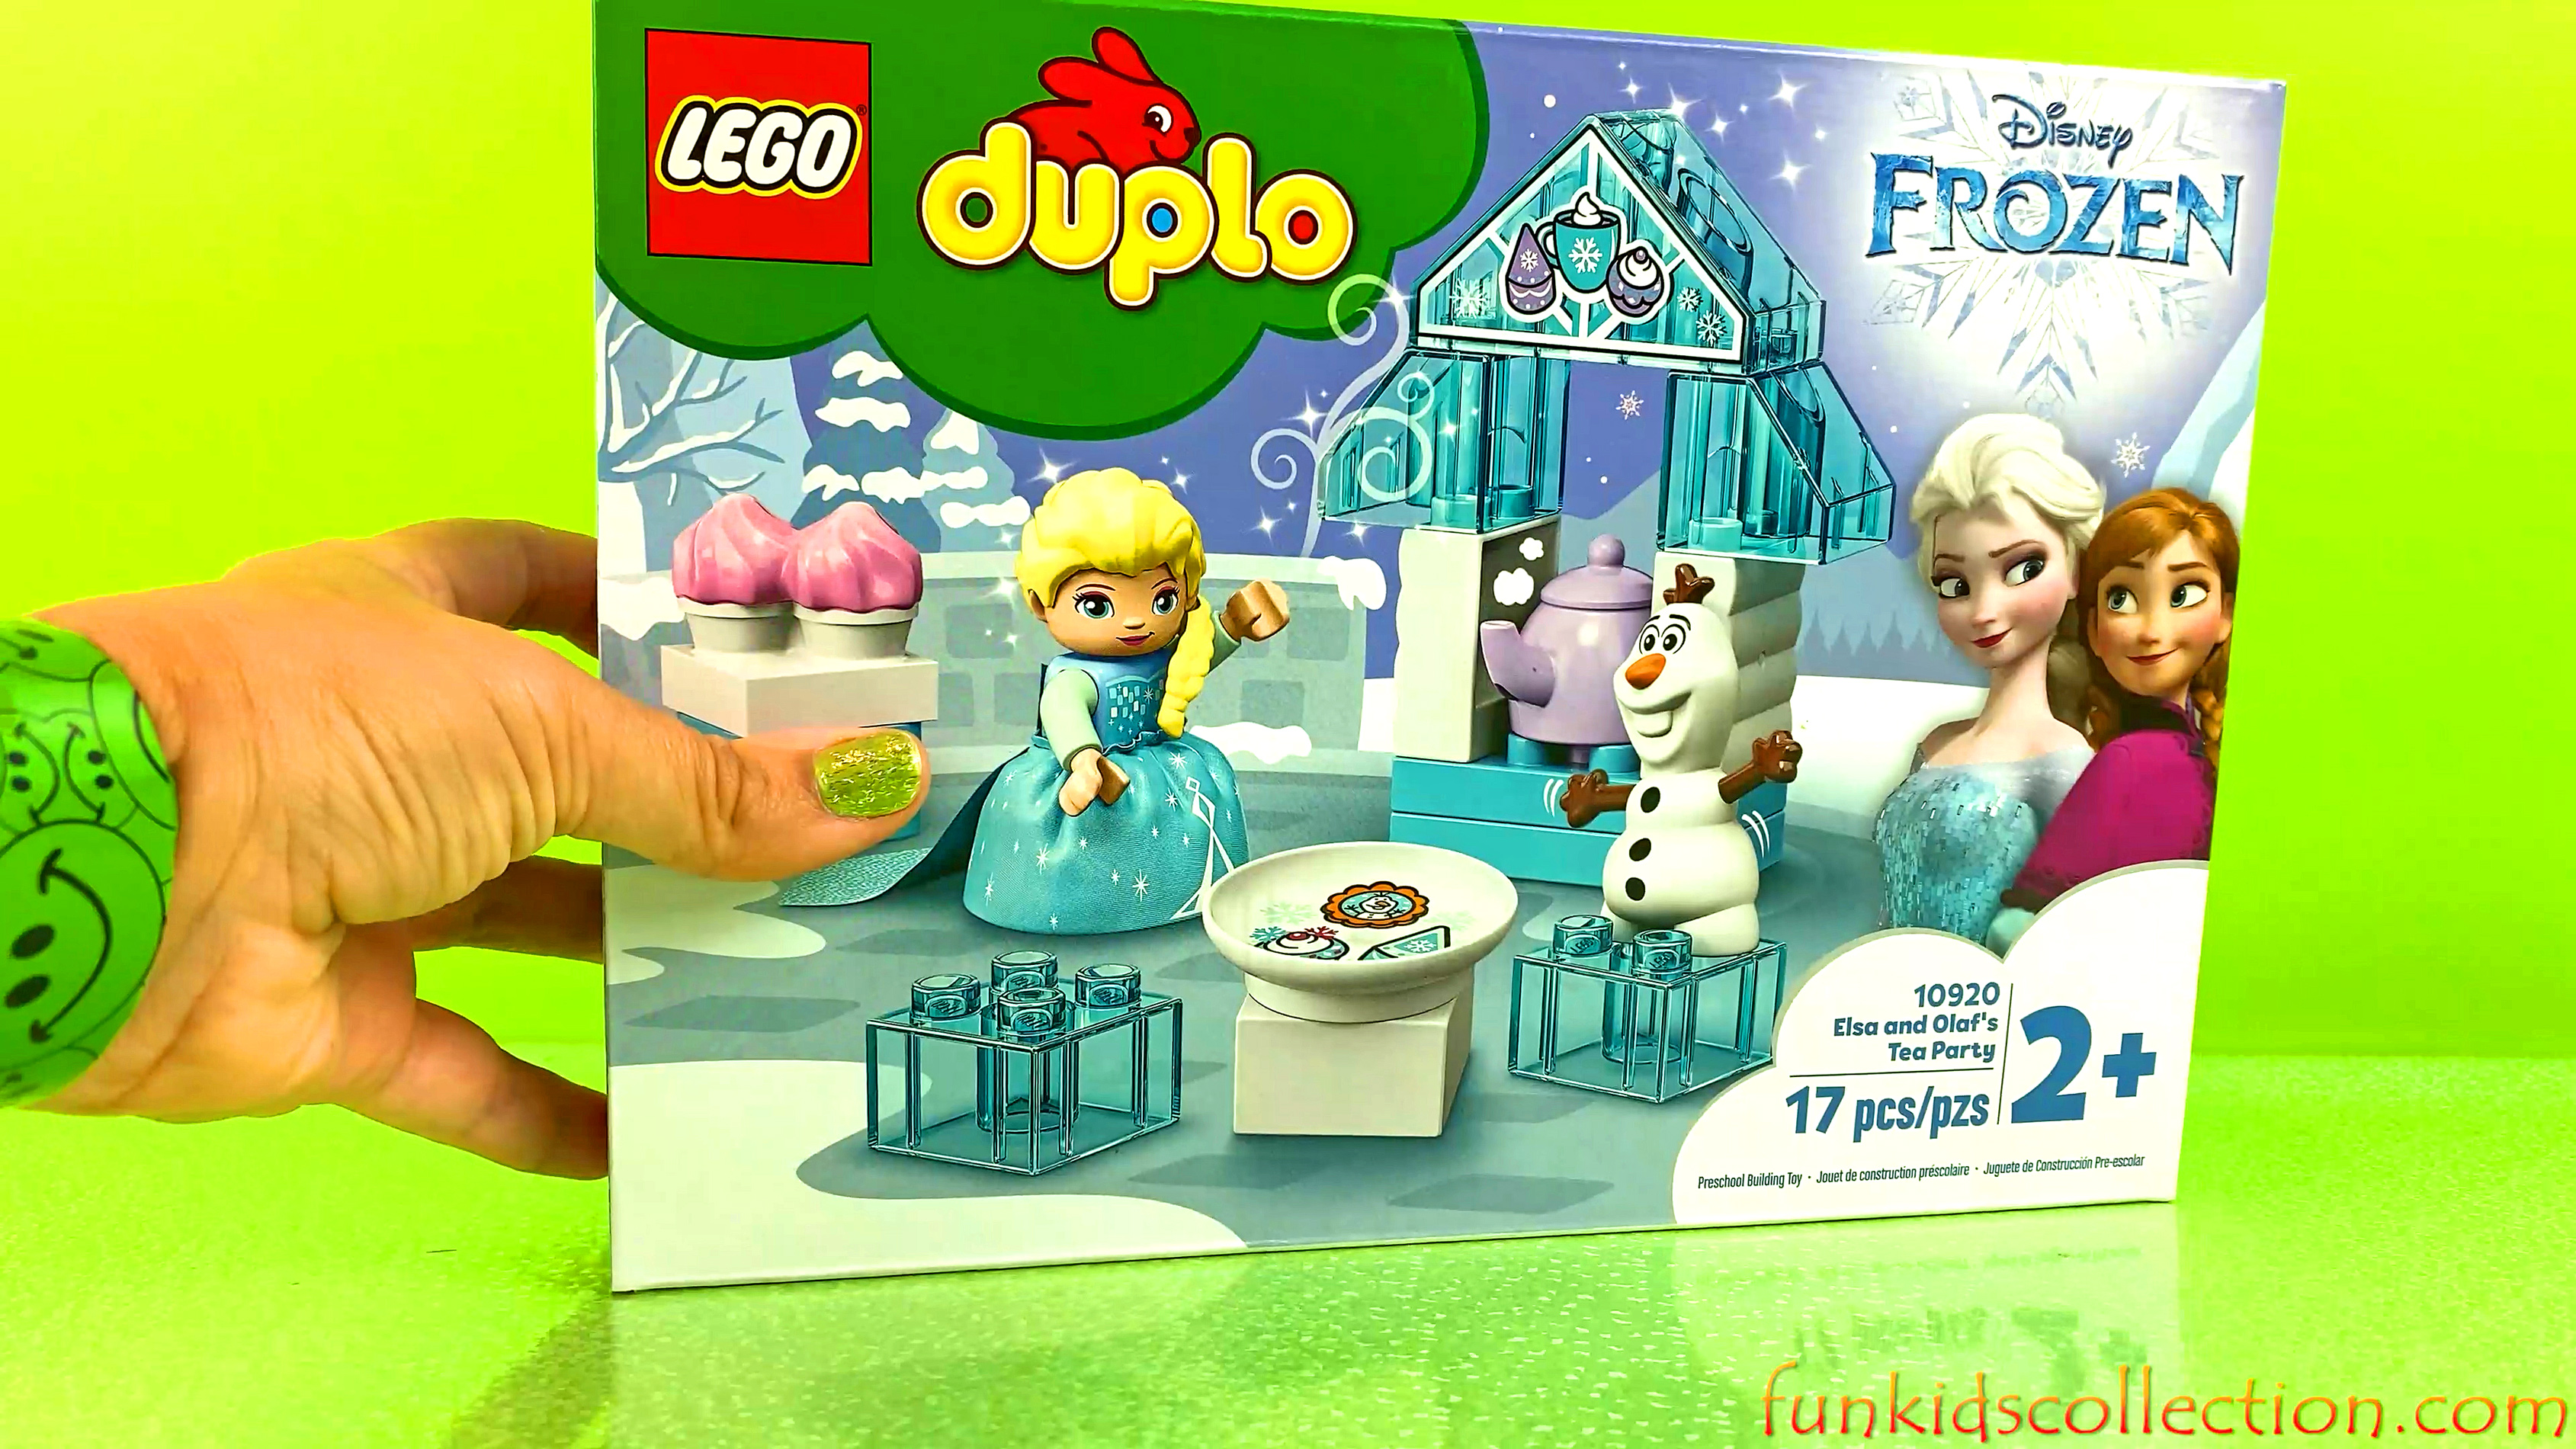 Disney Frozen Duplo Lego | Creating Frozen Elsa and Olaf 's Tea Party Duplo Lego 17 pcs